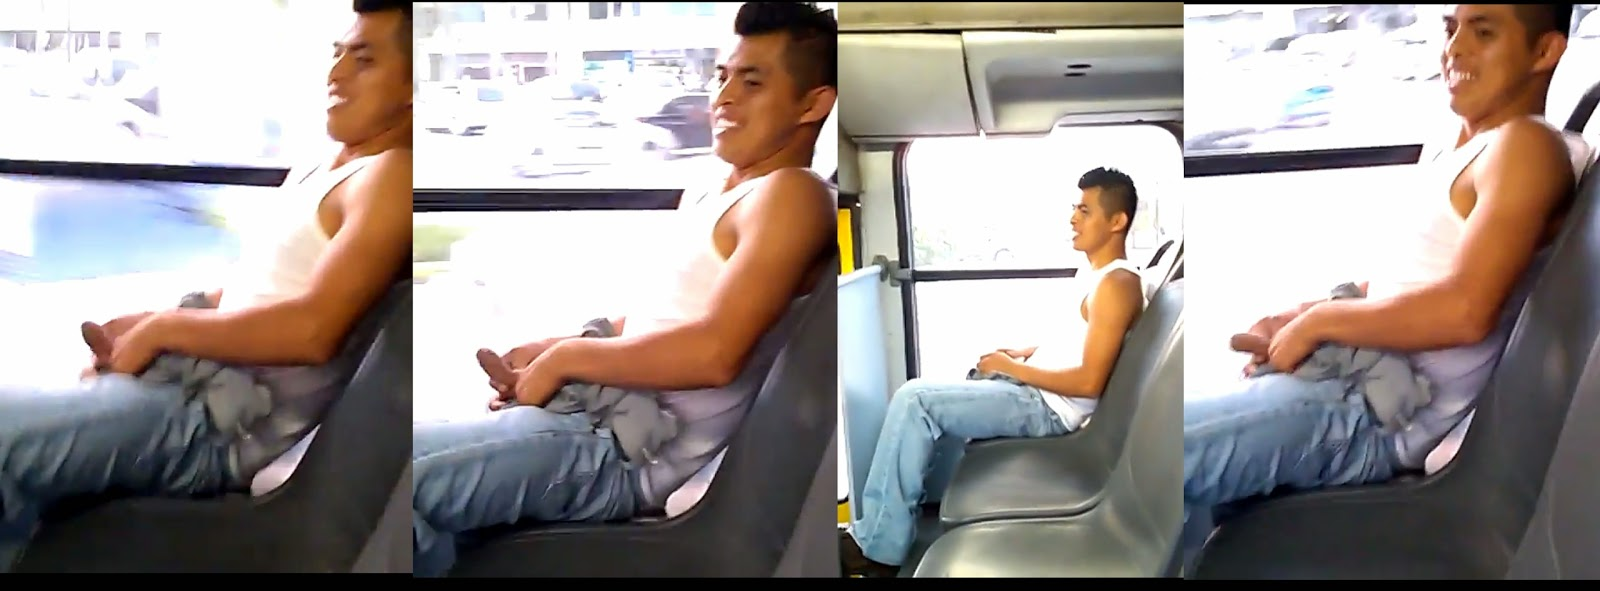 tubexposed straight guys exposed on the net@: caught jerking off in bus